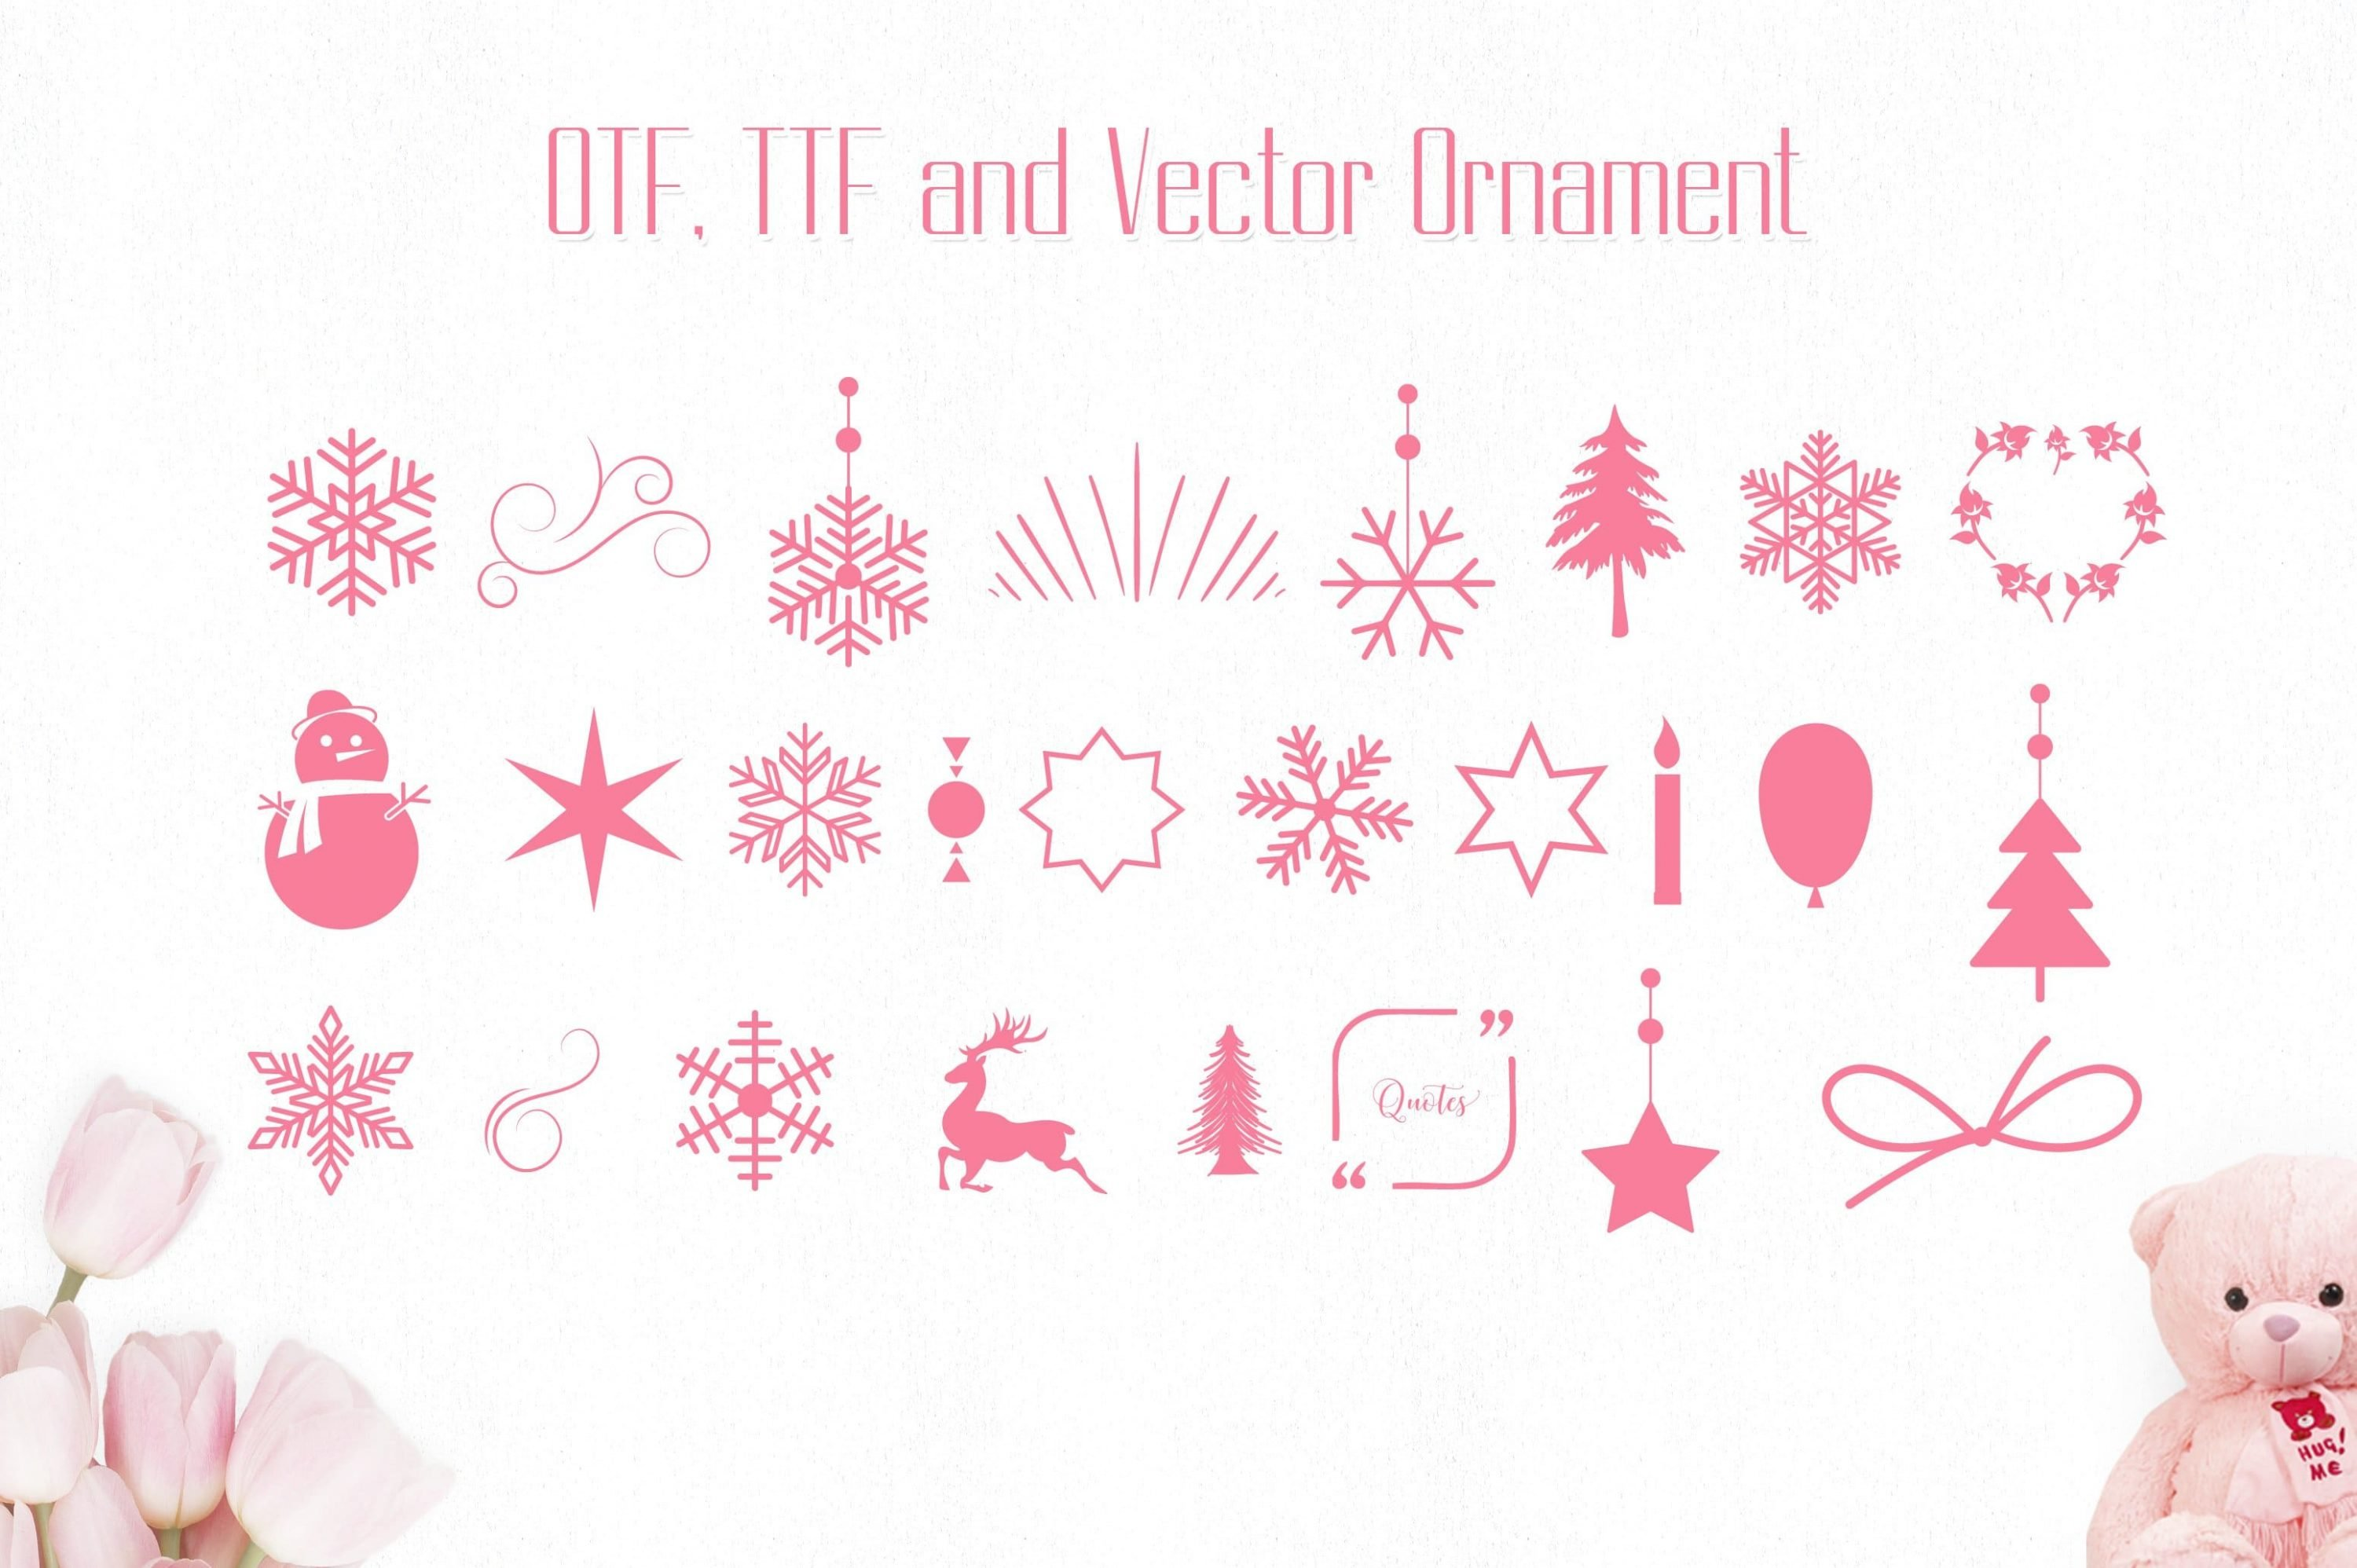 Ornament set with different icons.